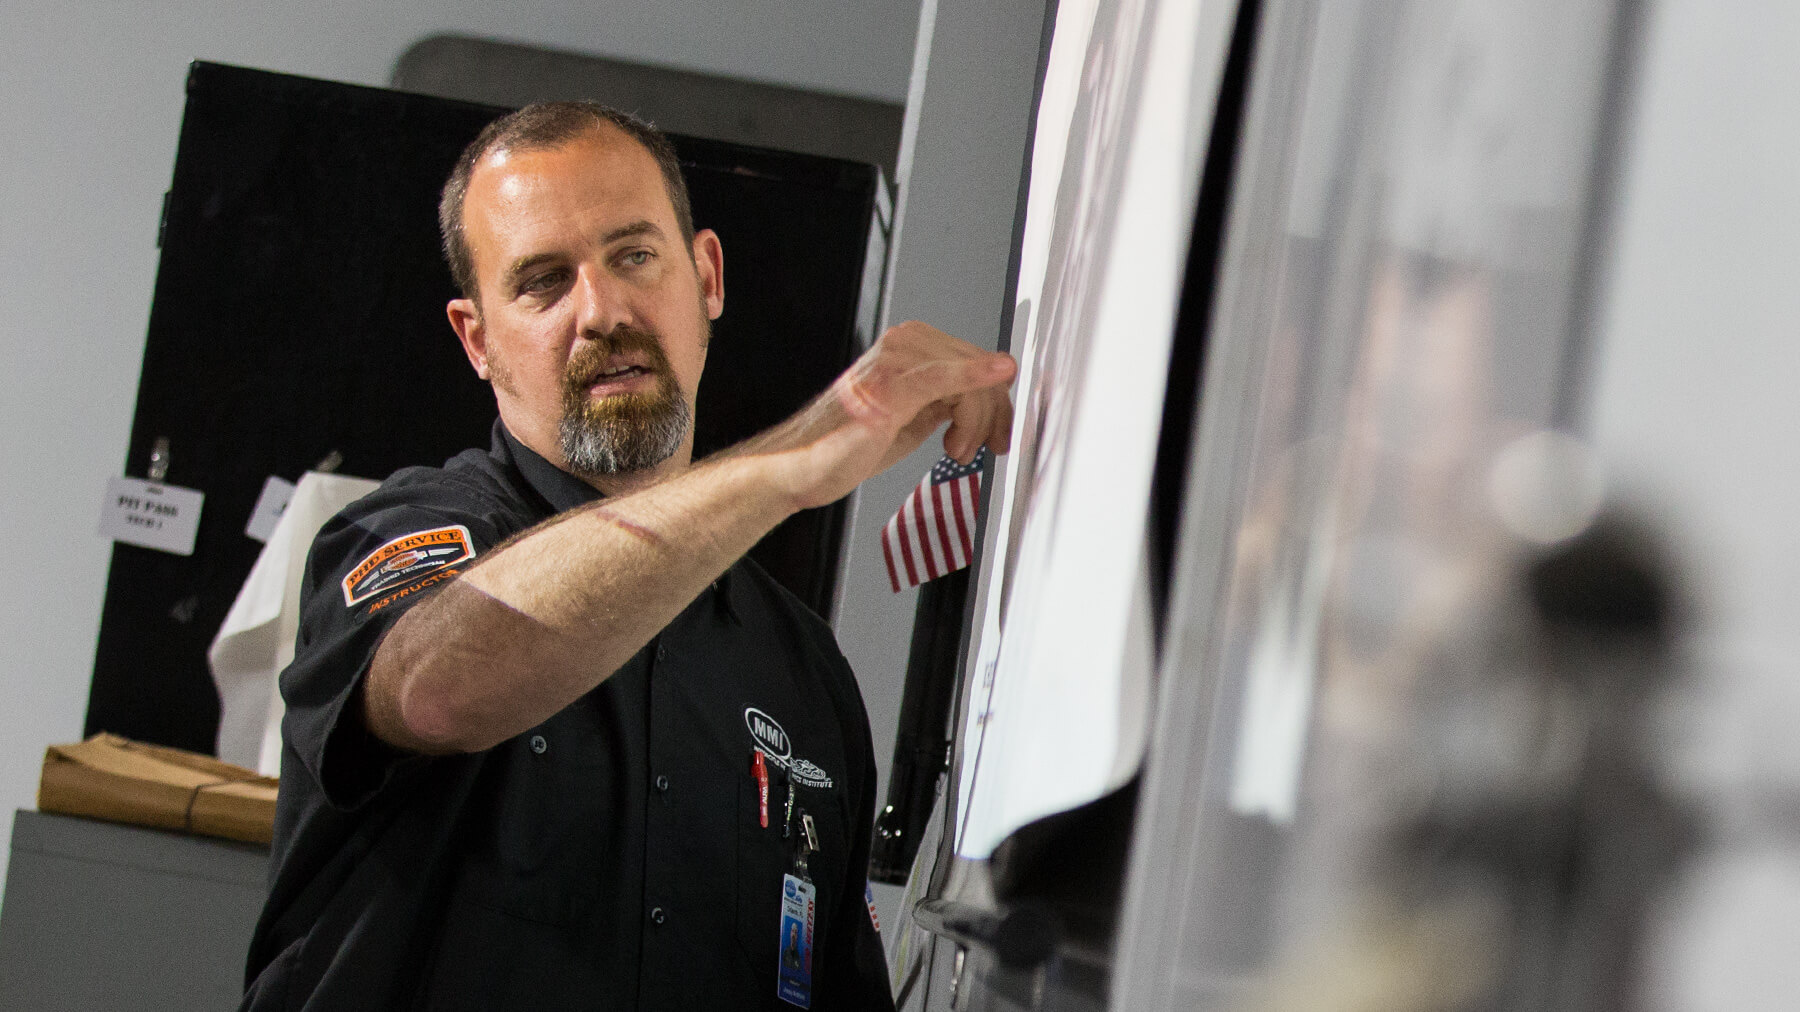 Harley-Davidson Mechanic Training Elective | MMI